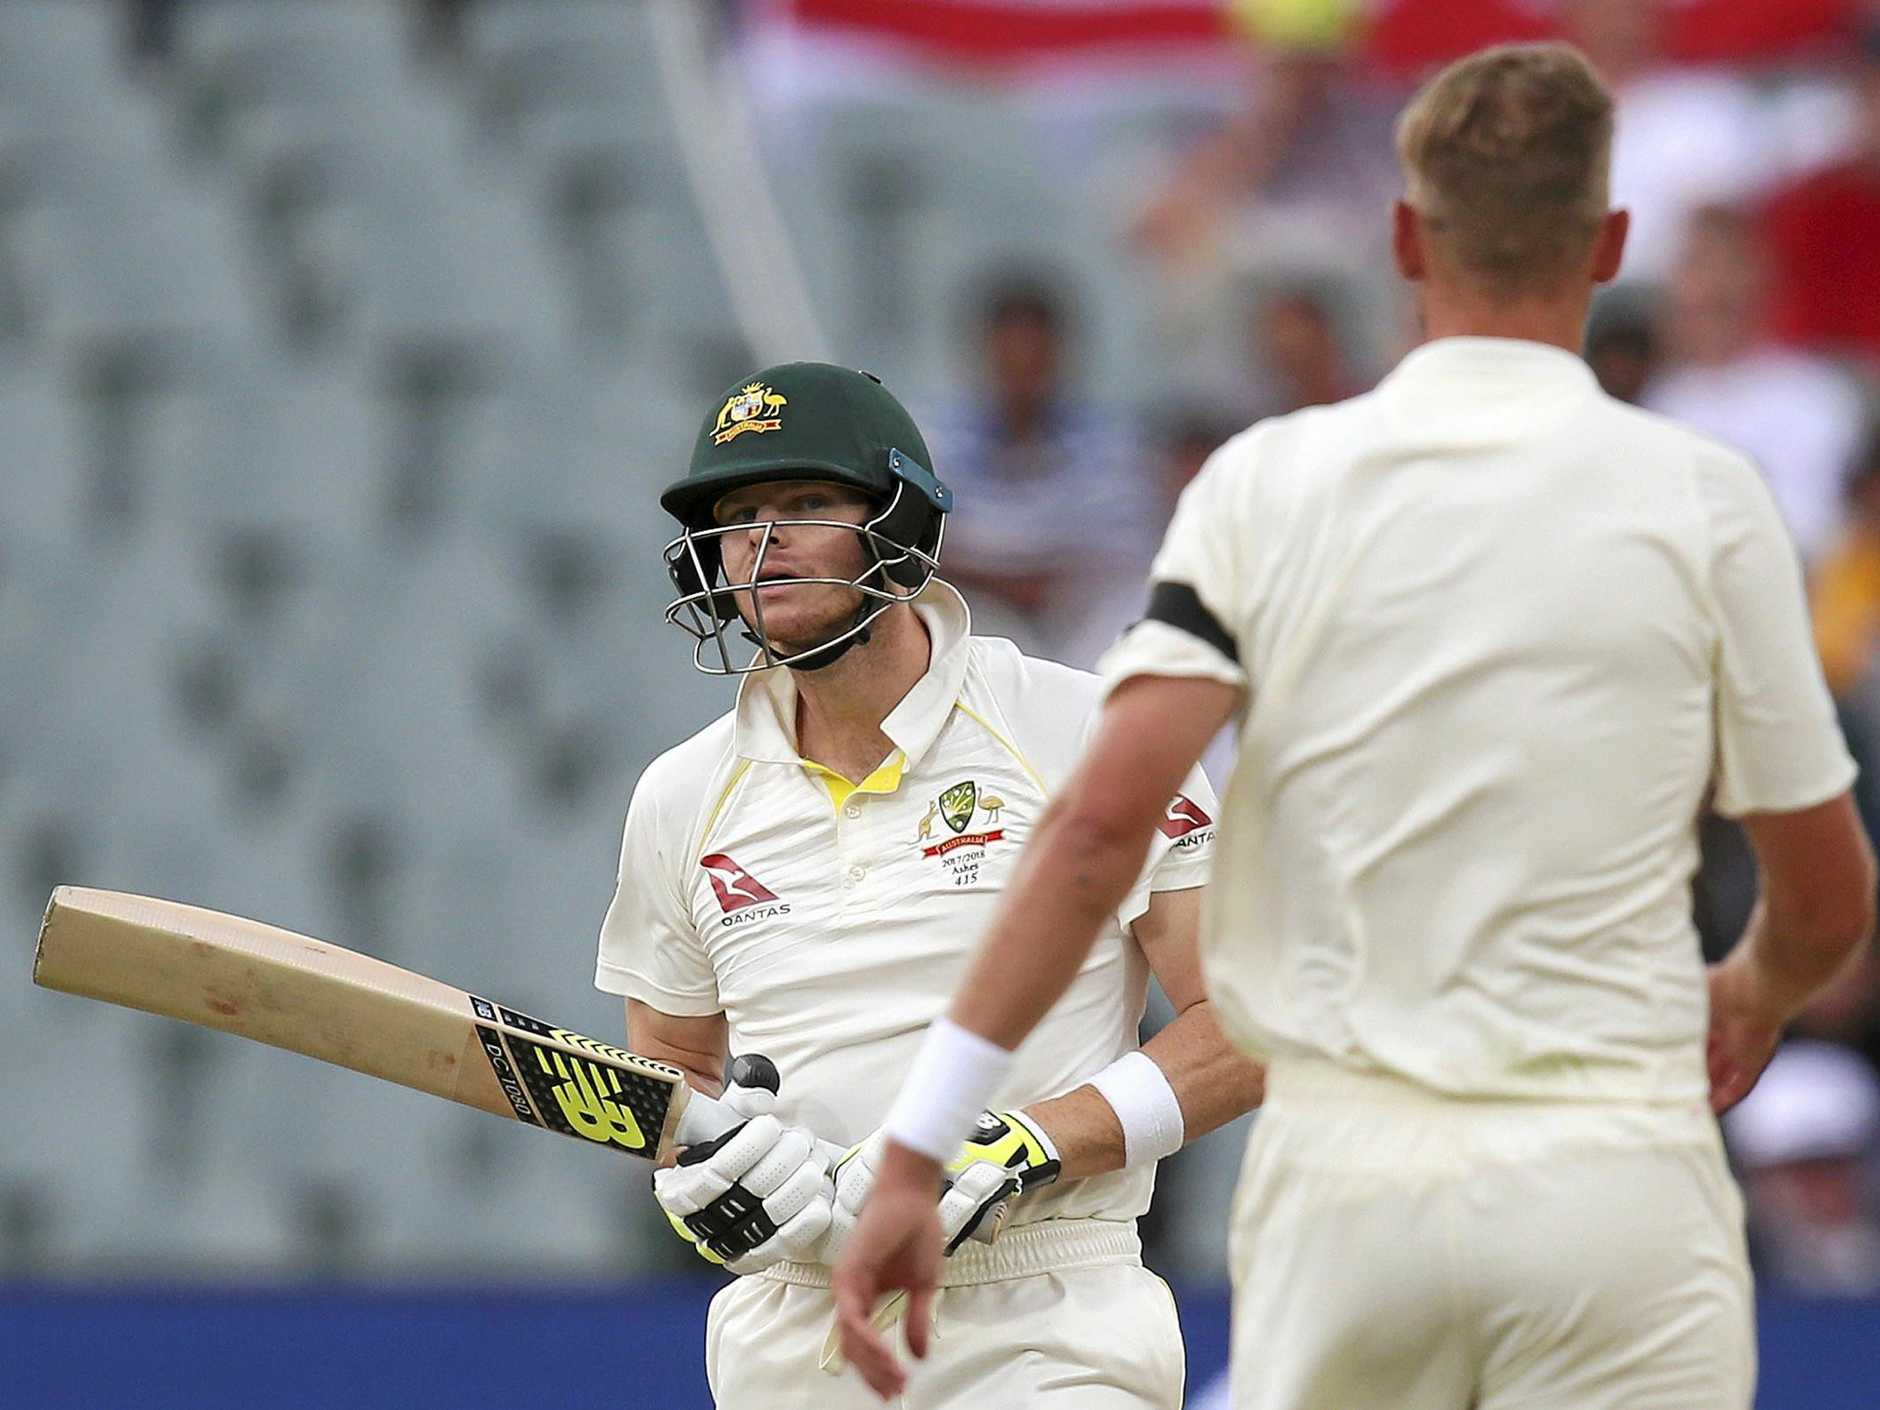 Australia's Steve Smith, left, and England's Stuart Broad have words mid-wicket during their Ashes test match in Adelaide, Saturday, Dec. 2, 2017. (AP Photo/Rick Rycroft)